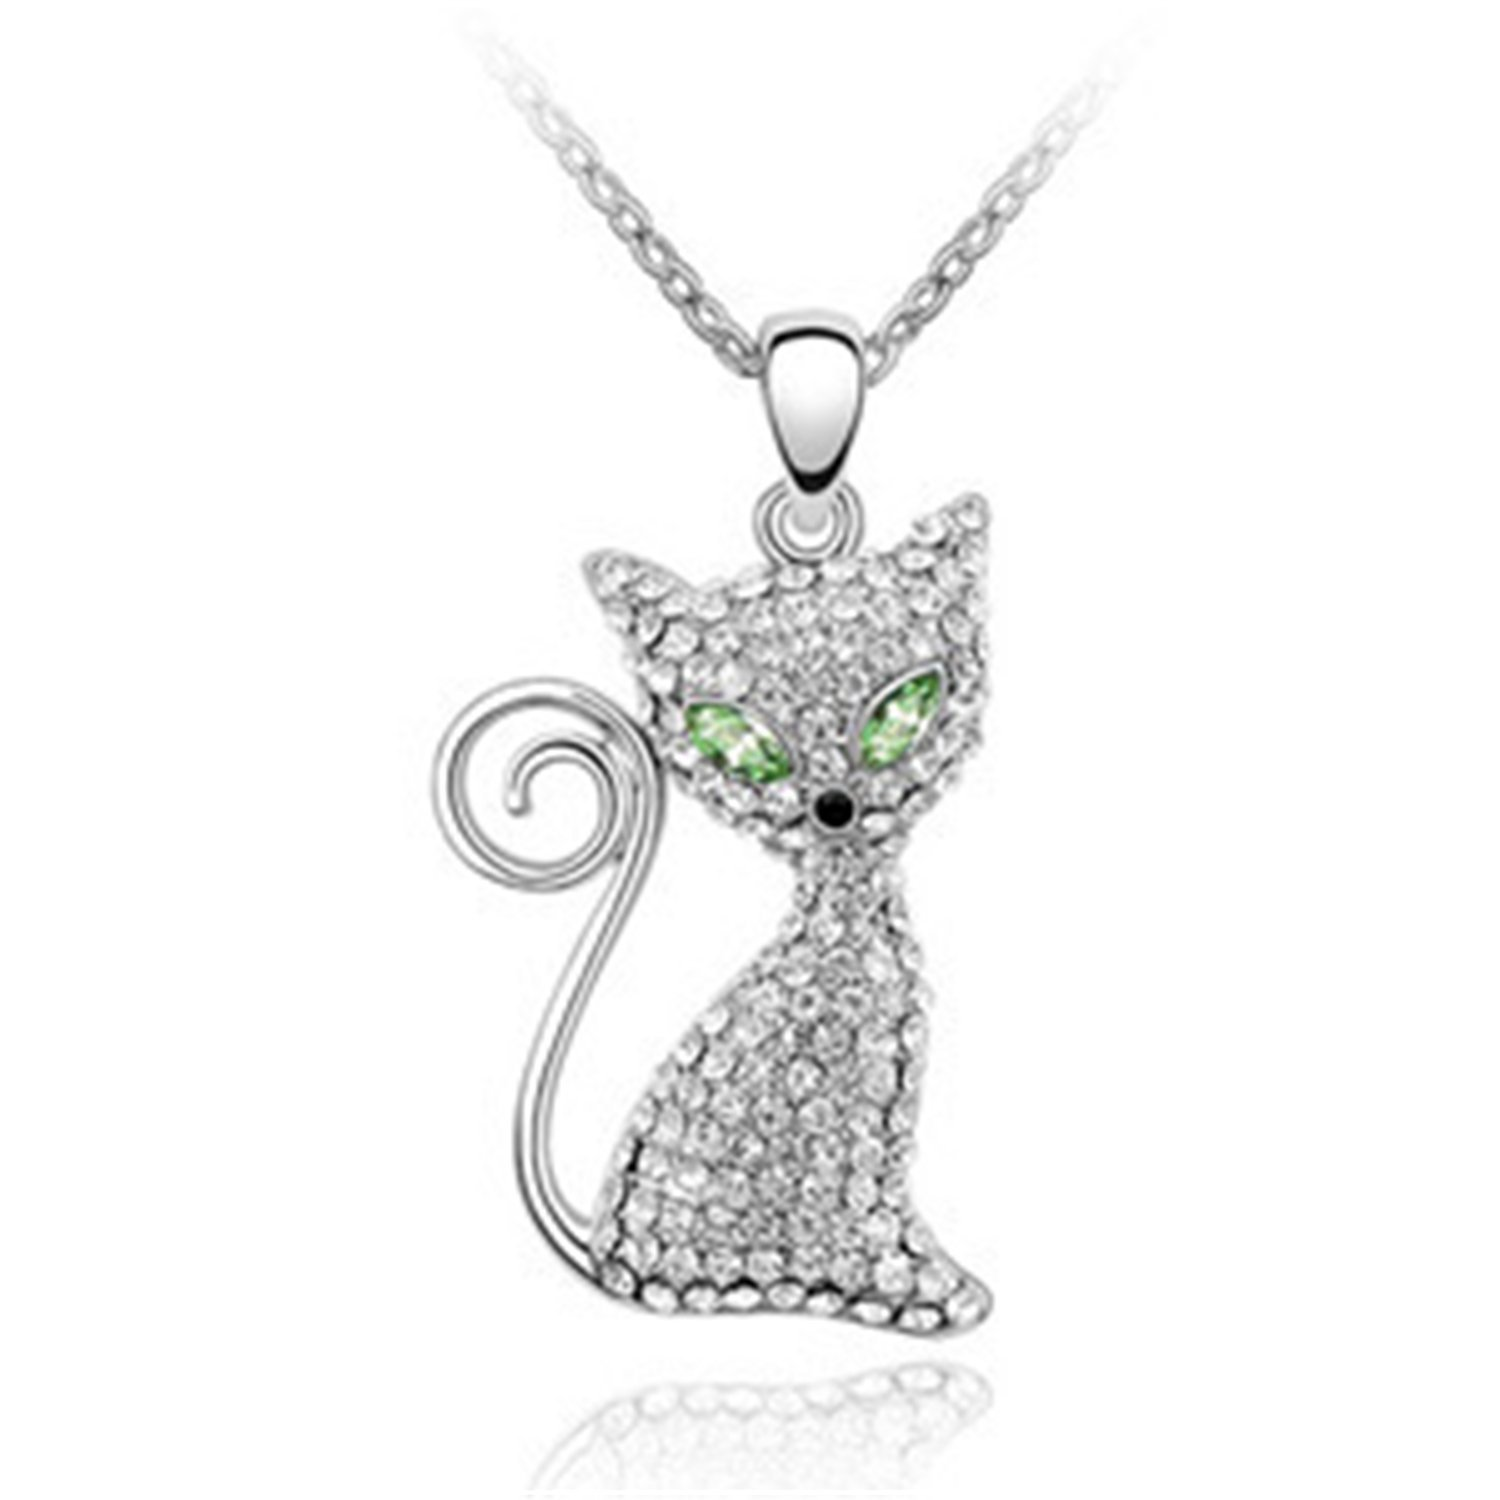 Shiny girlKitty Molly Crystals Cat Pendant Necklace, Elegant and eye-catching Women Fashion Jewelry-Olive